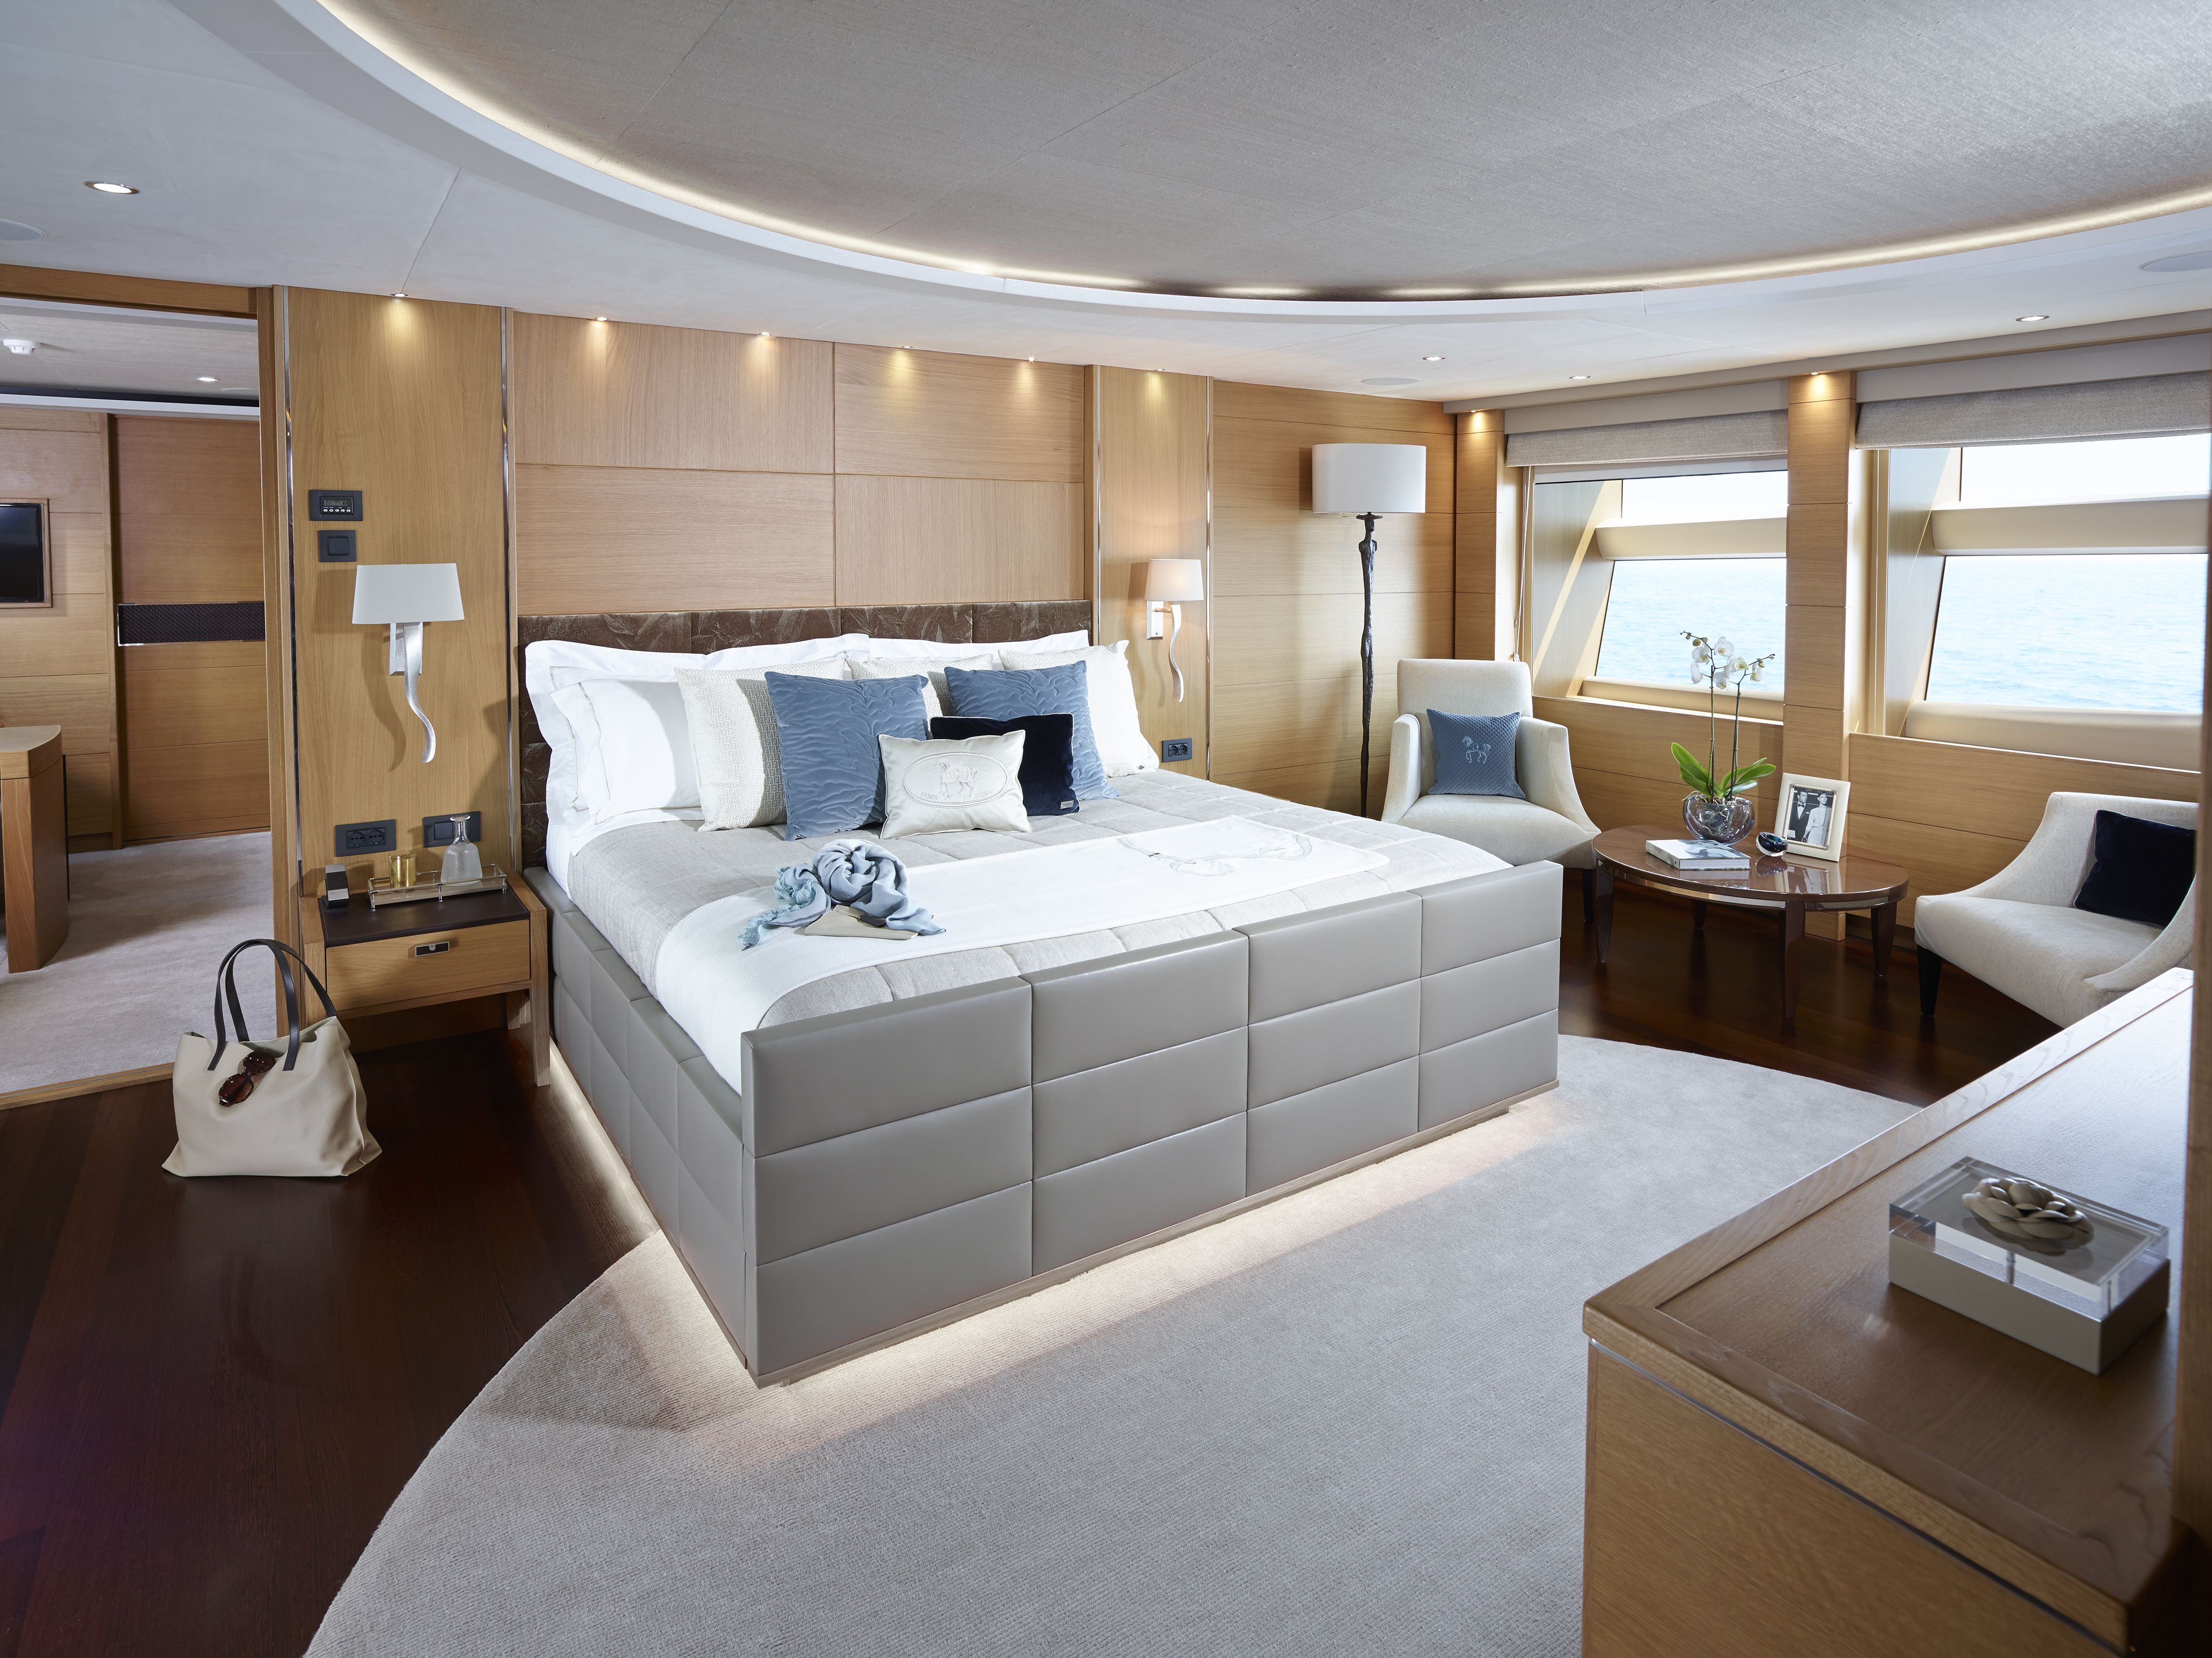 Princess Yachts International Has Released Brand New Photography Of Its Latest M Class Yacht The